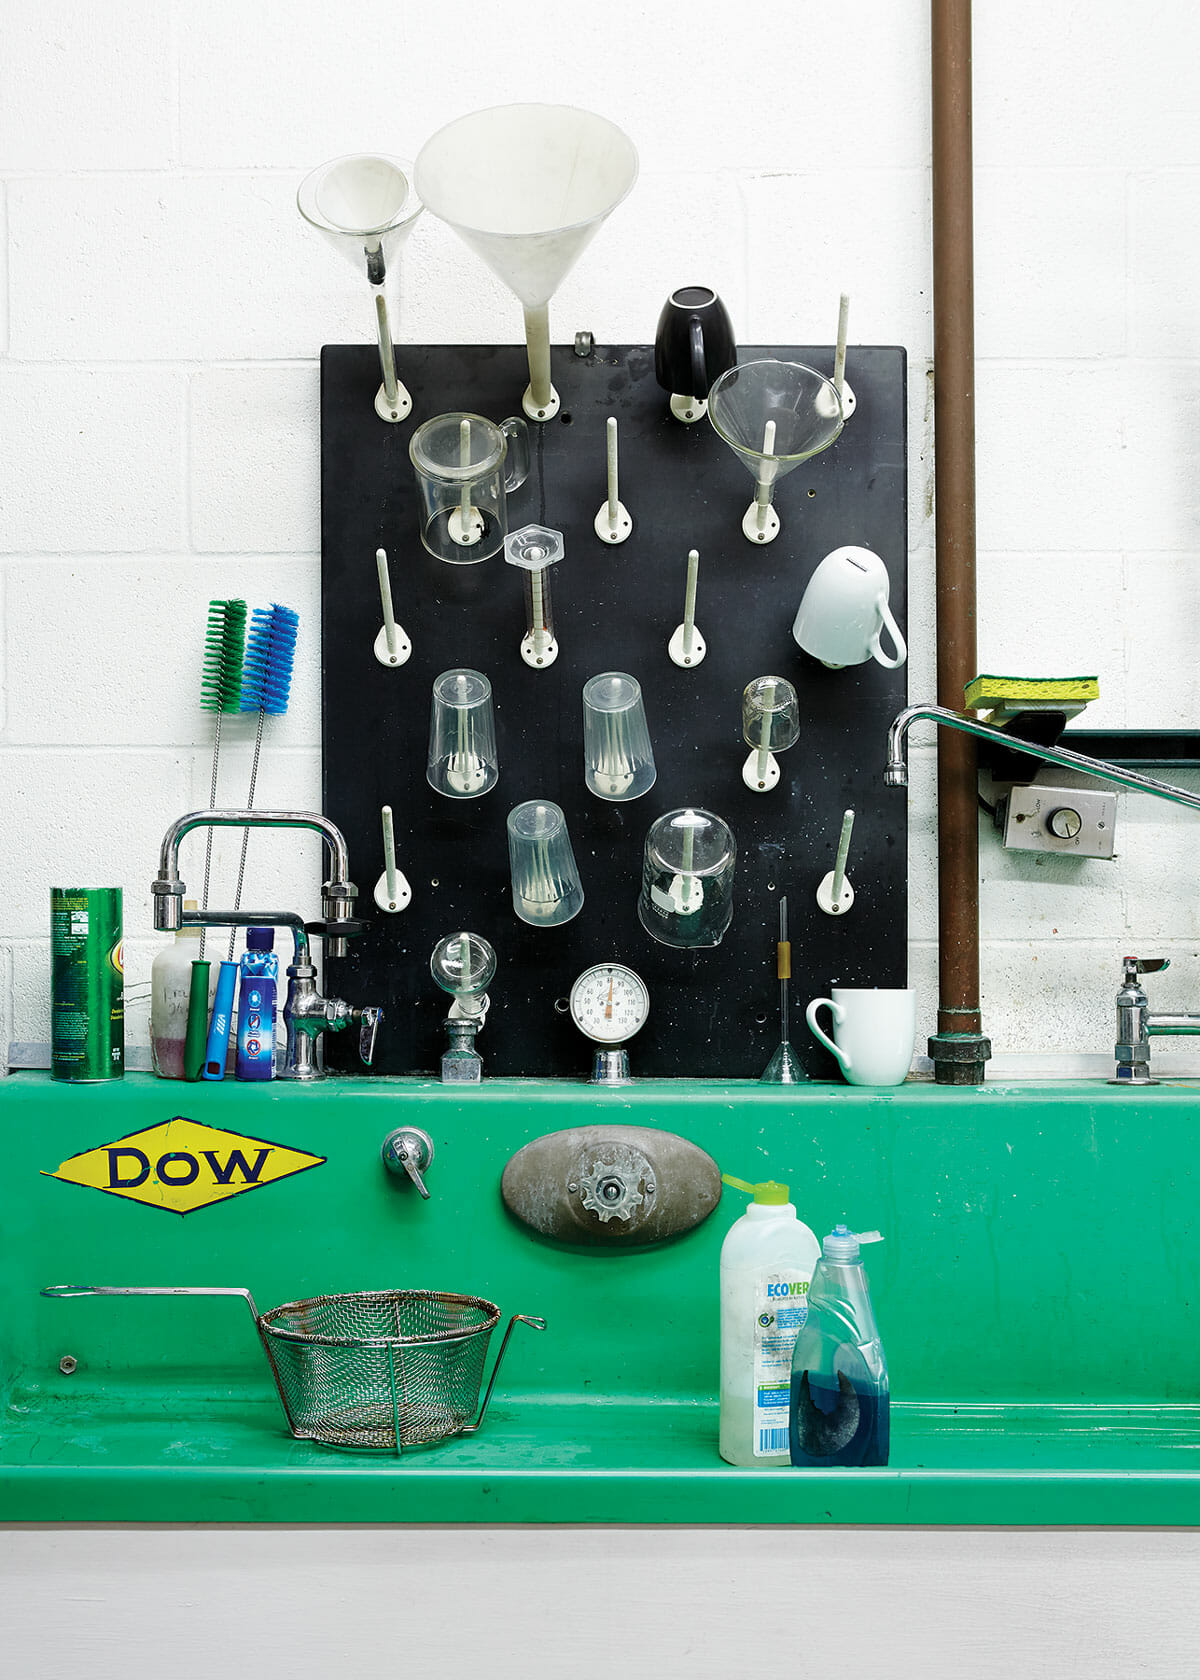 The glass-washing sink with glassware drying rack above. The sink was originally used for photographic developing.